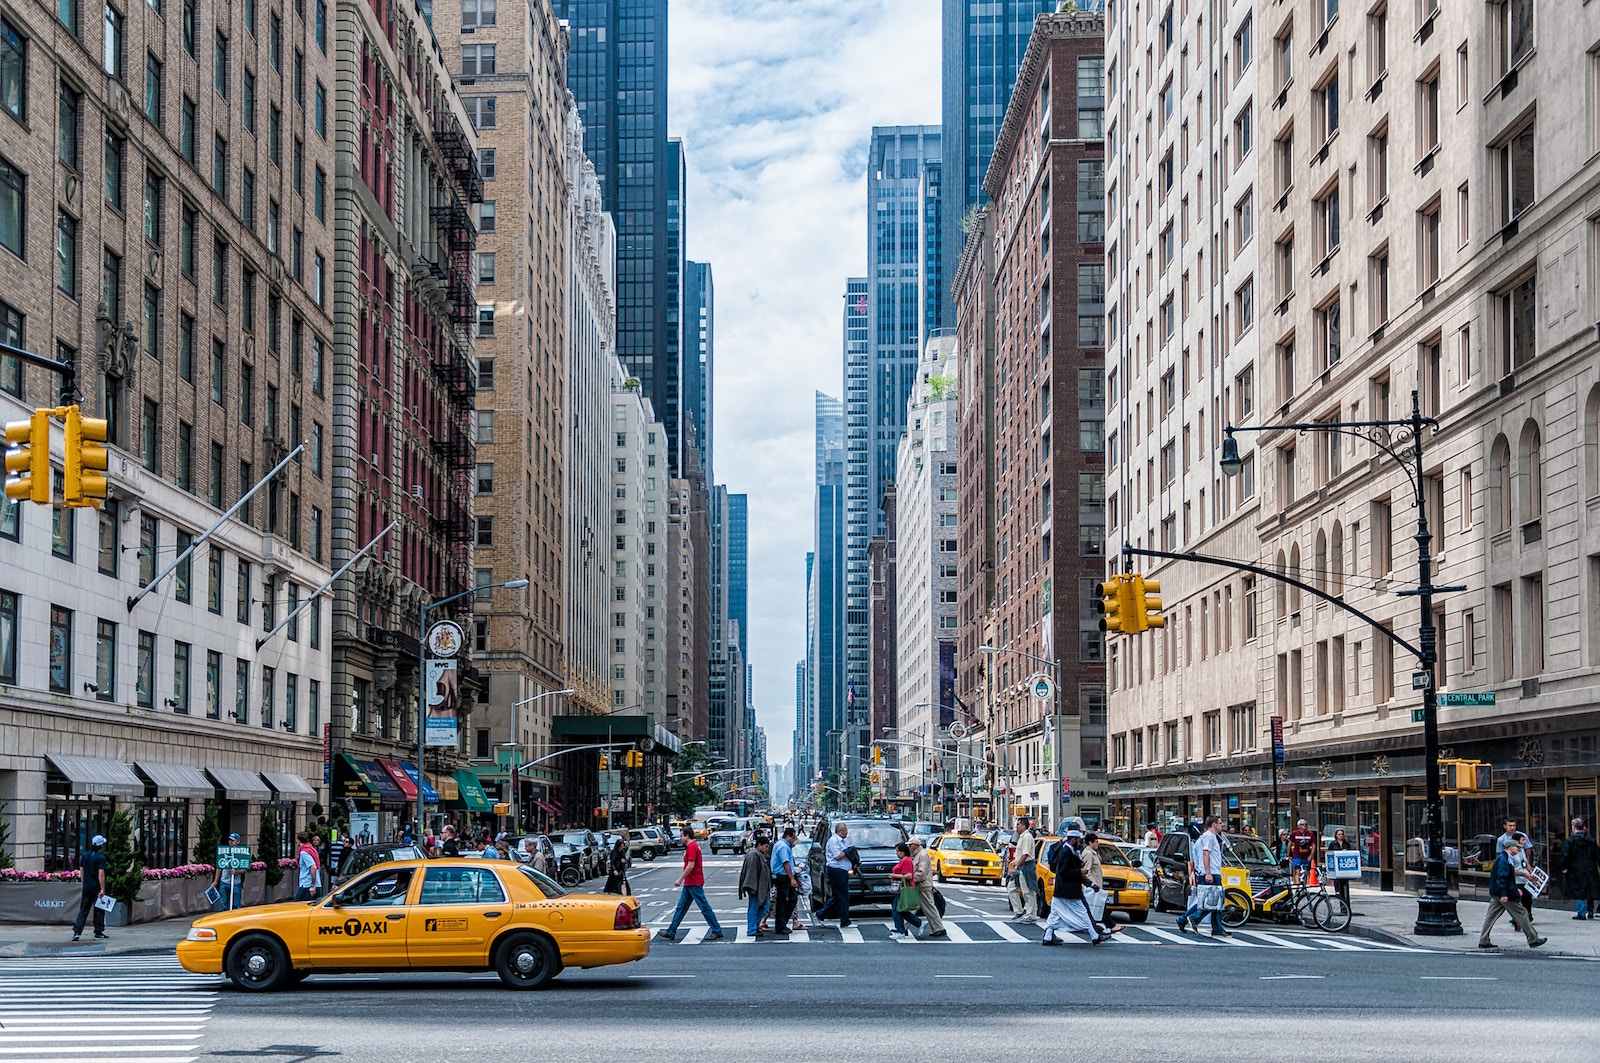 new_york_these_are_the_most_vegan_friendly_cities_in_the_us_main_image